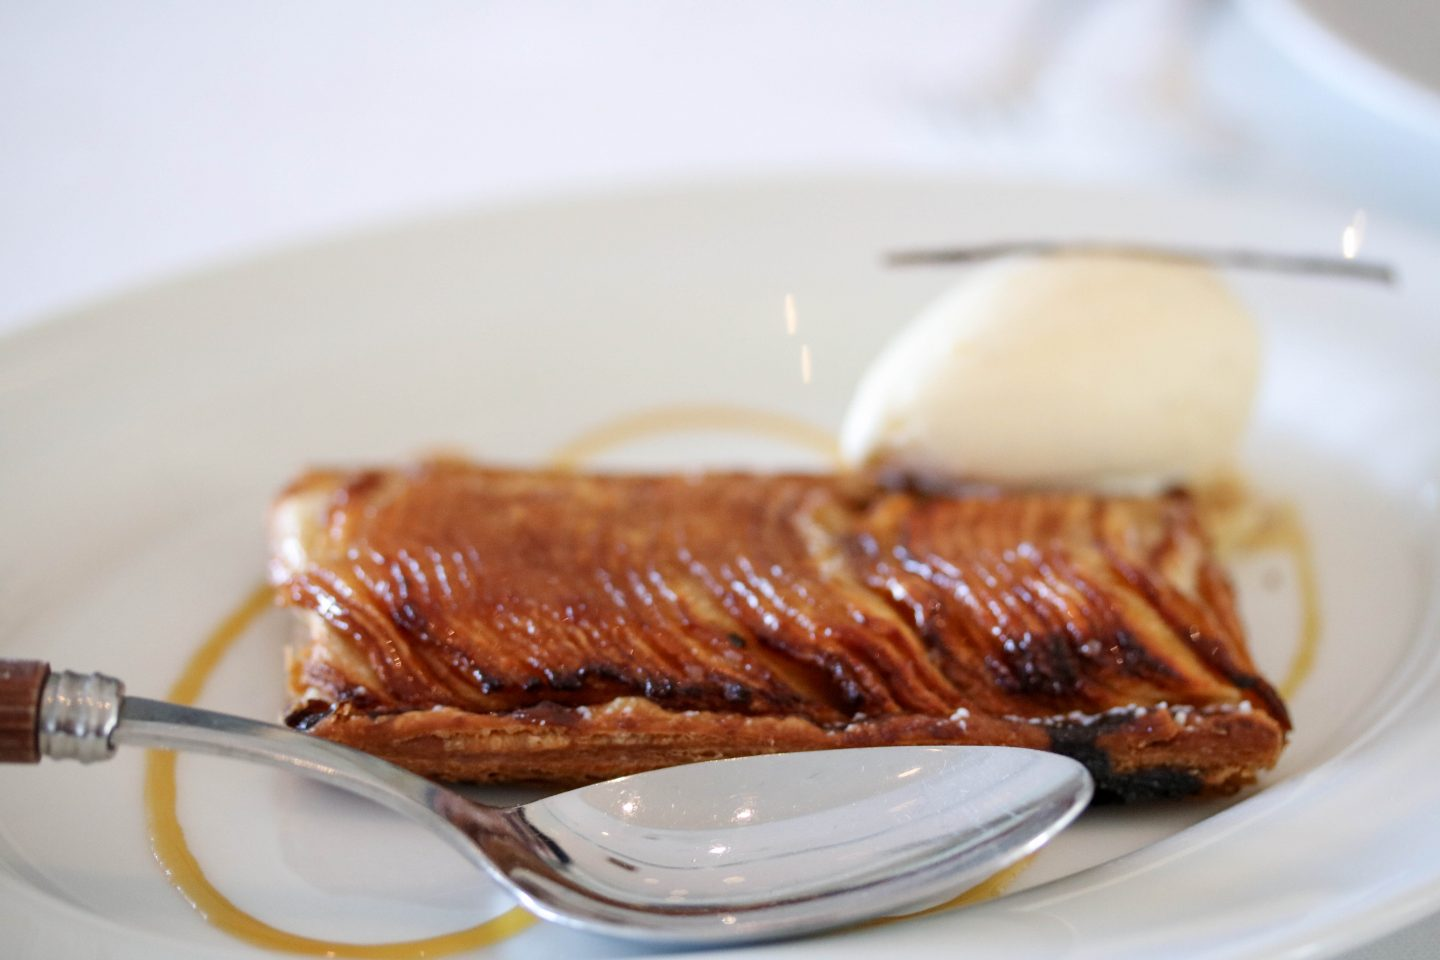 Apple tart - Top 10 Things to do in Dubai - The Lifestyle Enthusiast Blog